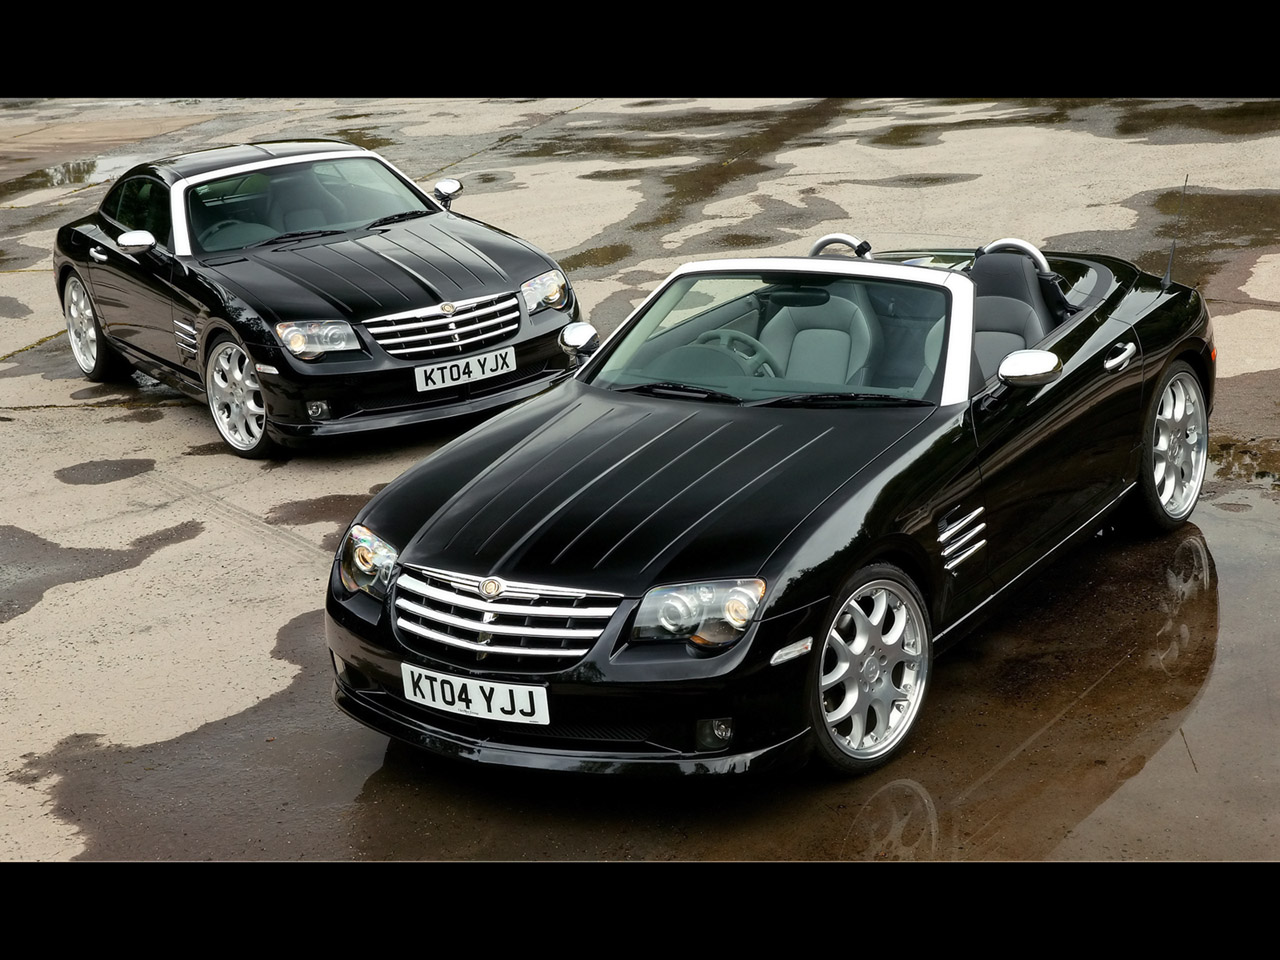 chrysler crossfire 3.2 coupe #7